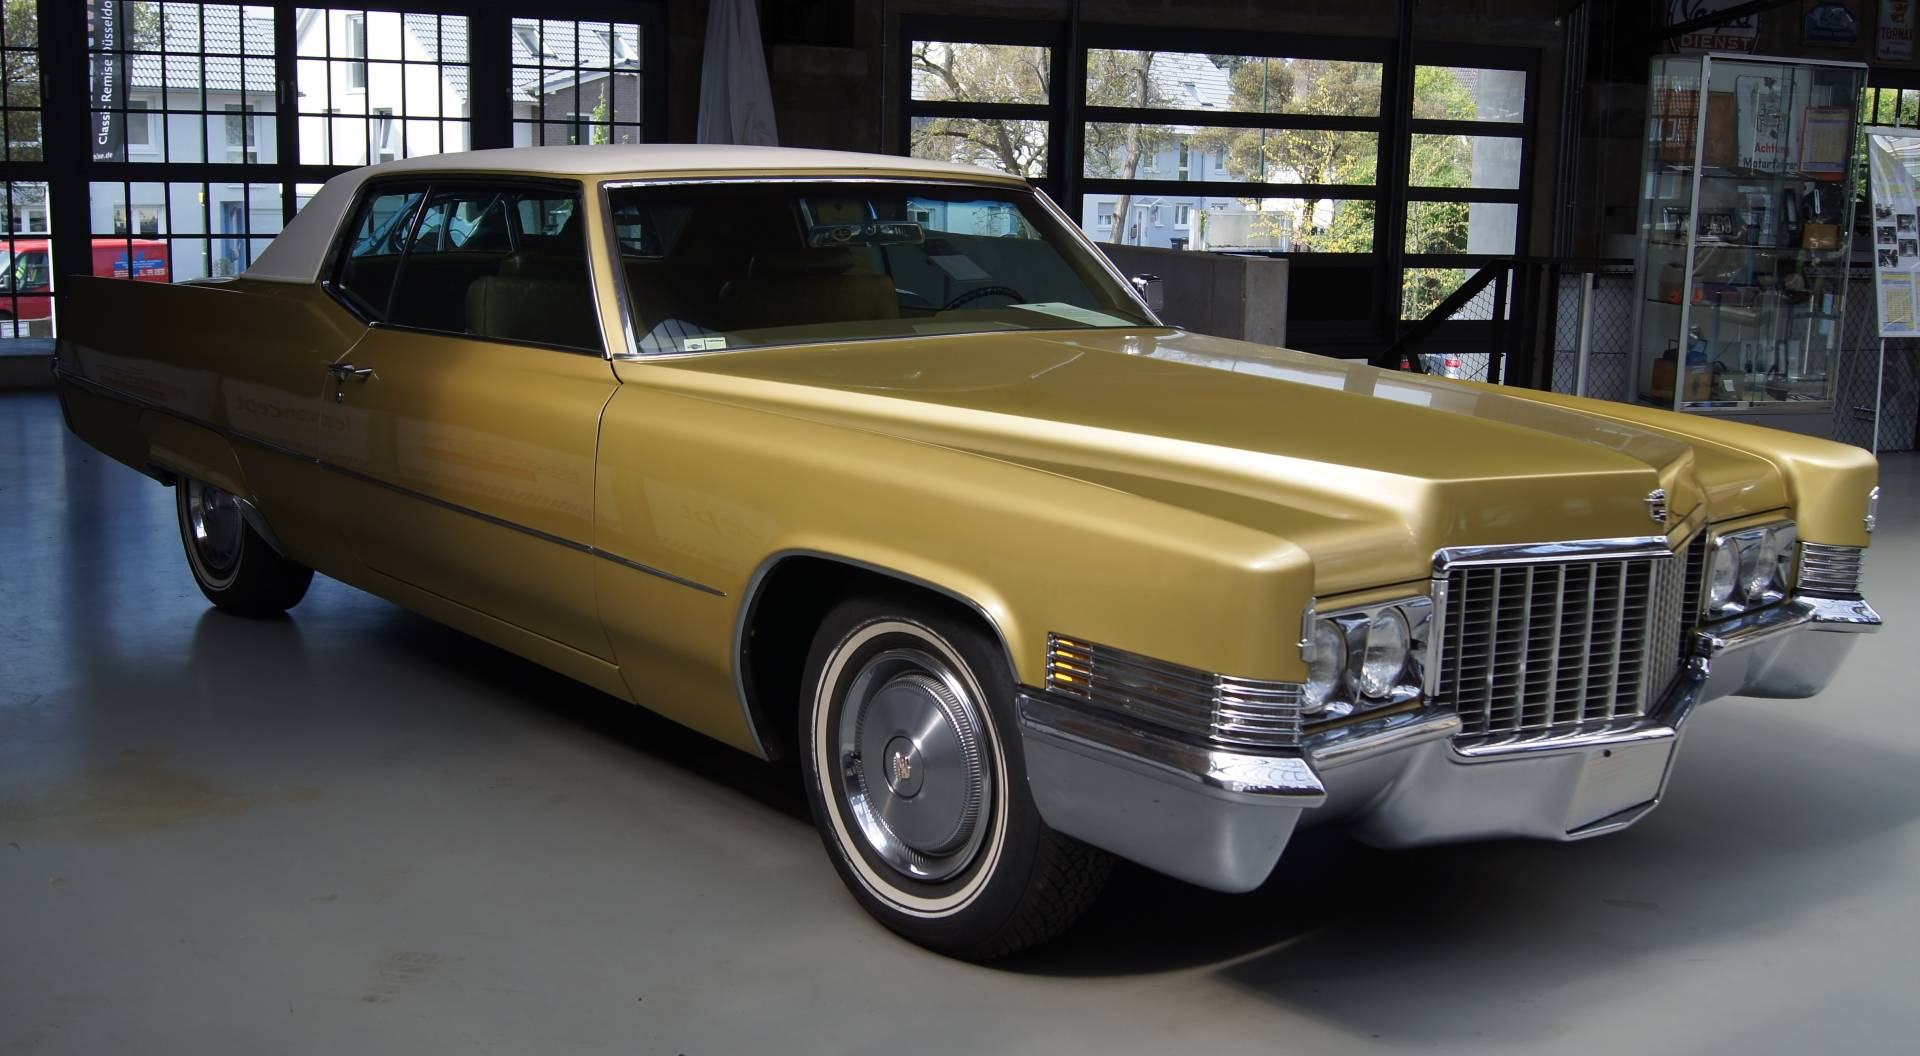 The gold cadillac